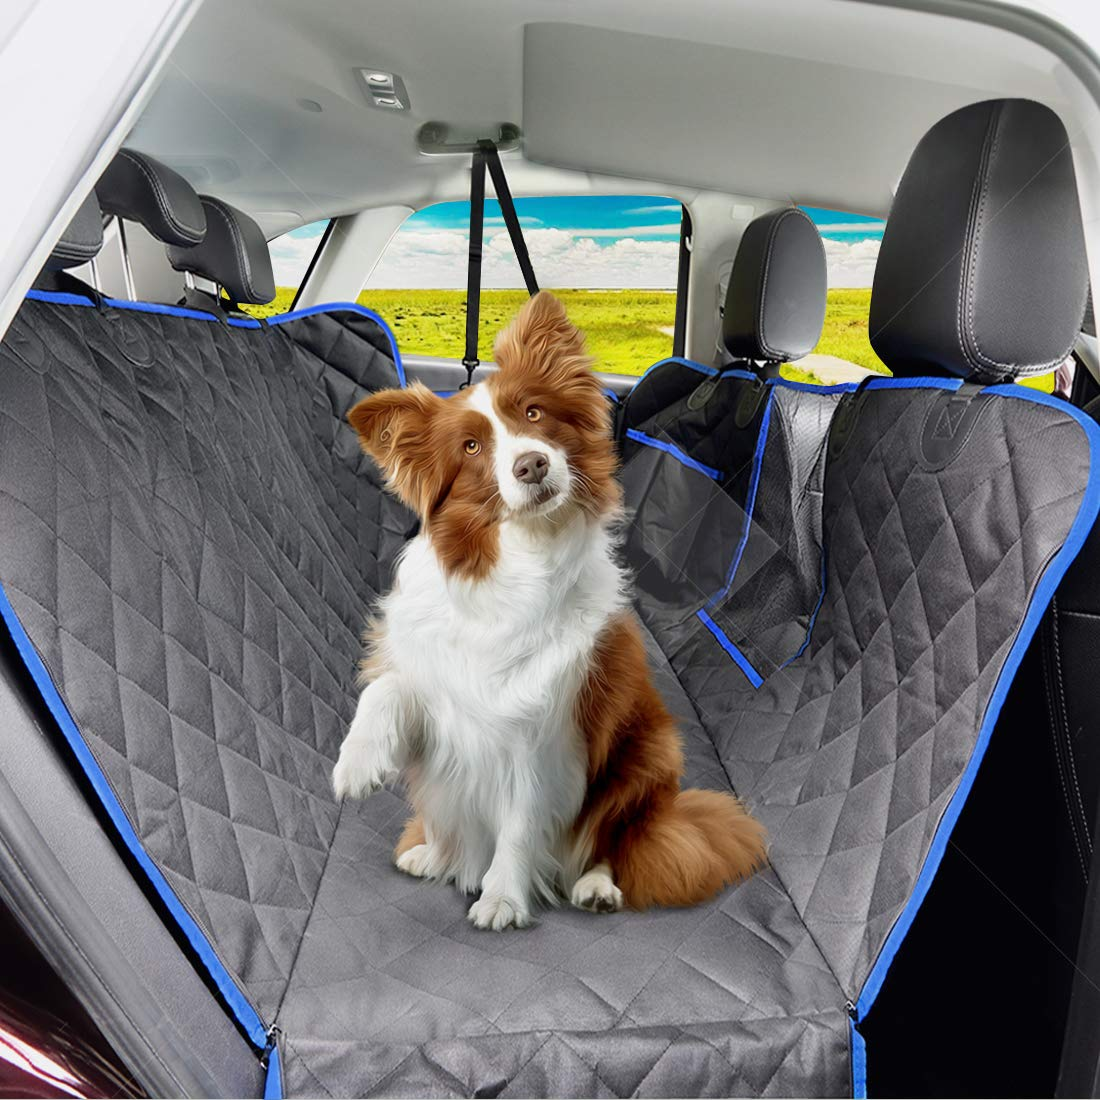 SUPSOO Dog Car Seat Cover Waterproof Durable Anti-Scratch Nonslip Back Seat Pet Protection Dog Travel Hammock with Mesh Window and Side Flaps for Cars/Trucks/SUV by SUPSOO (Image #8)